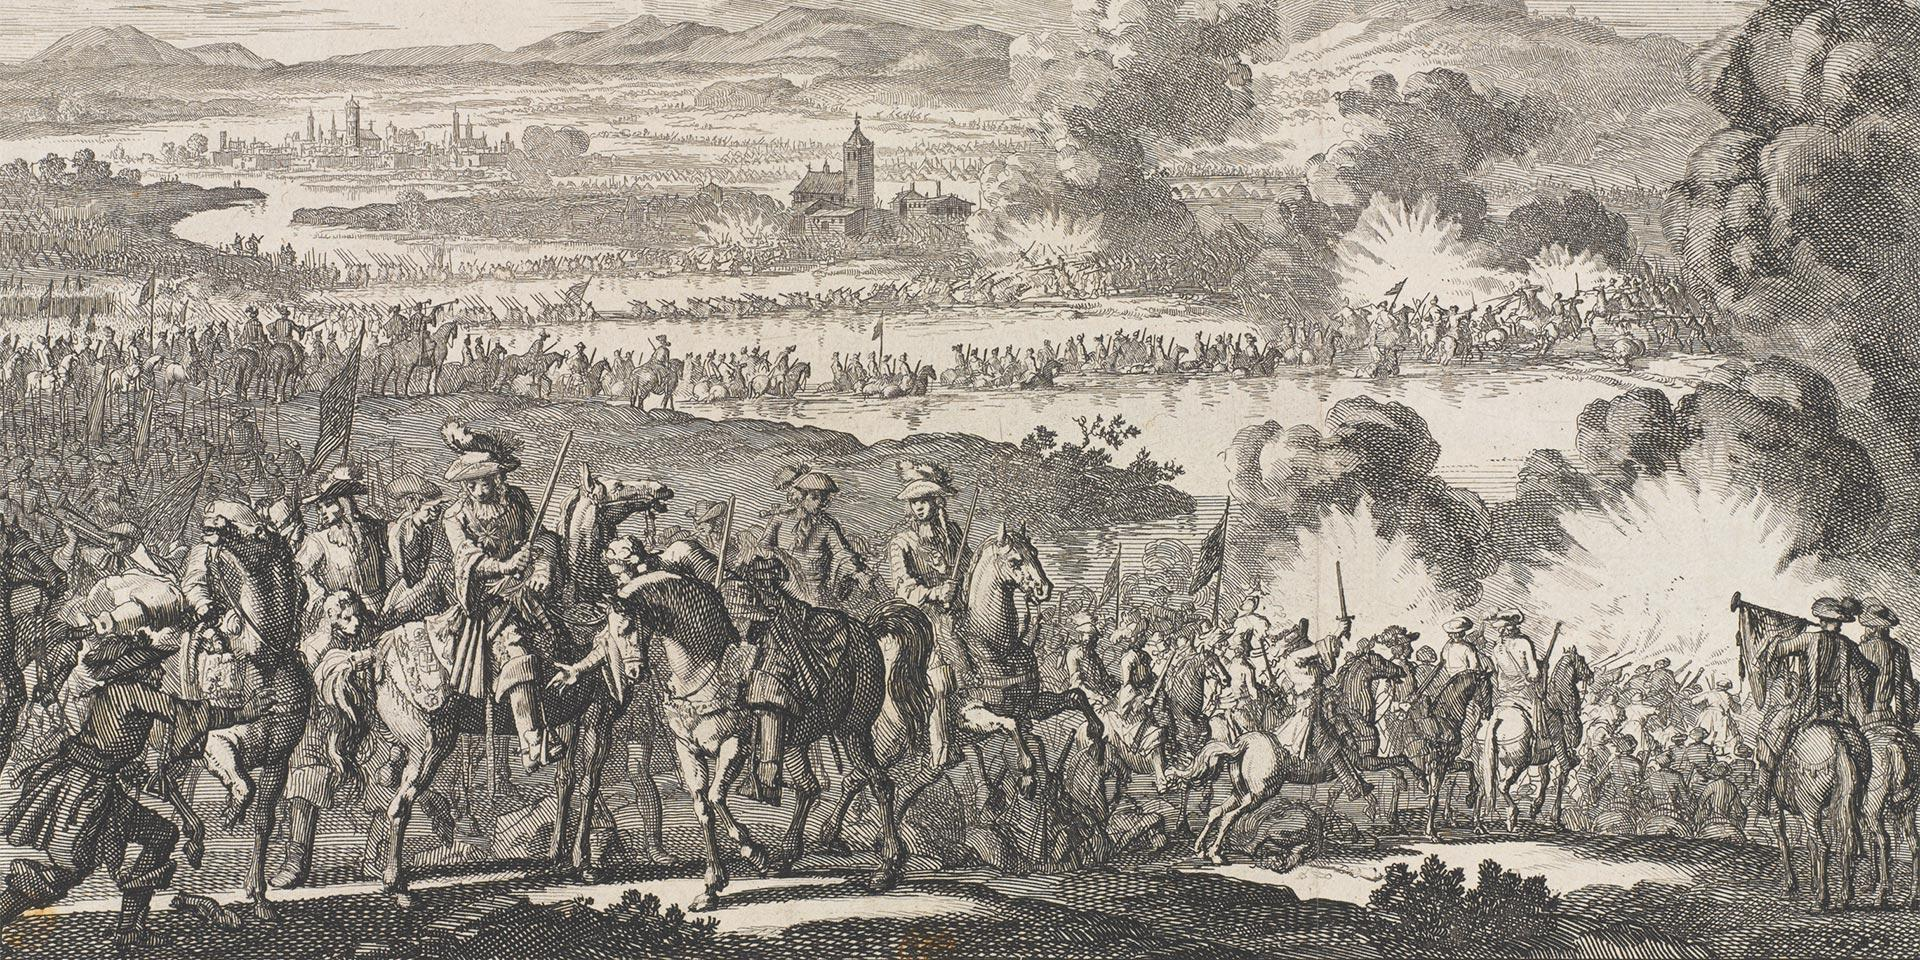 'Passage de Boyne' etching depicting the wounding of King William by a cannon ball